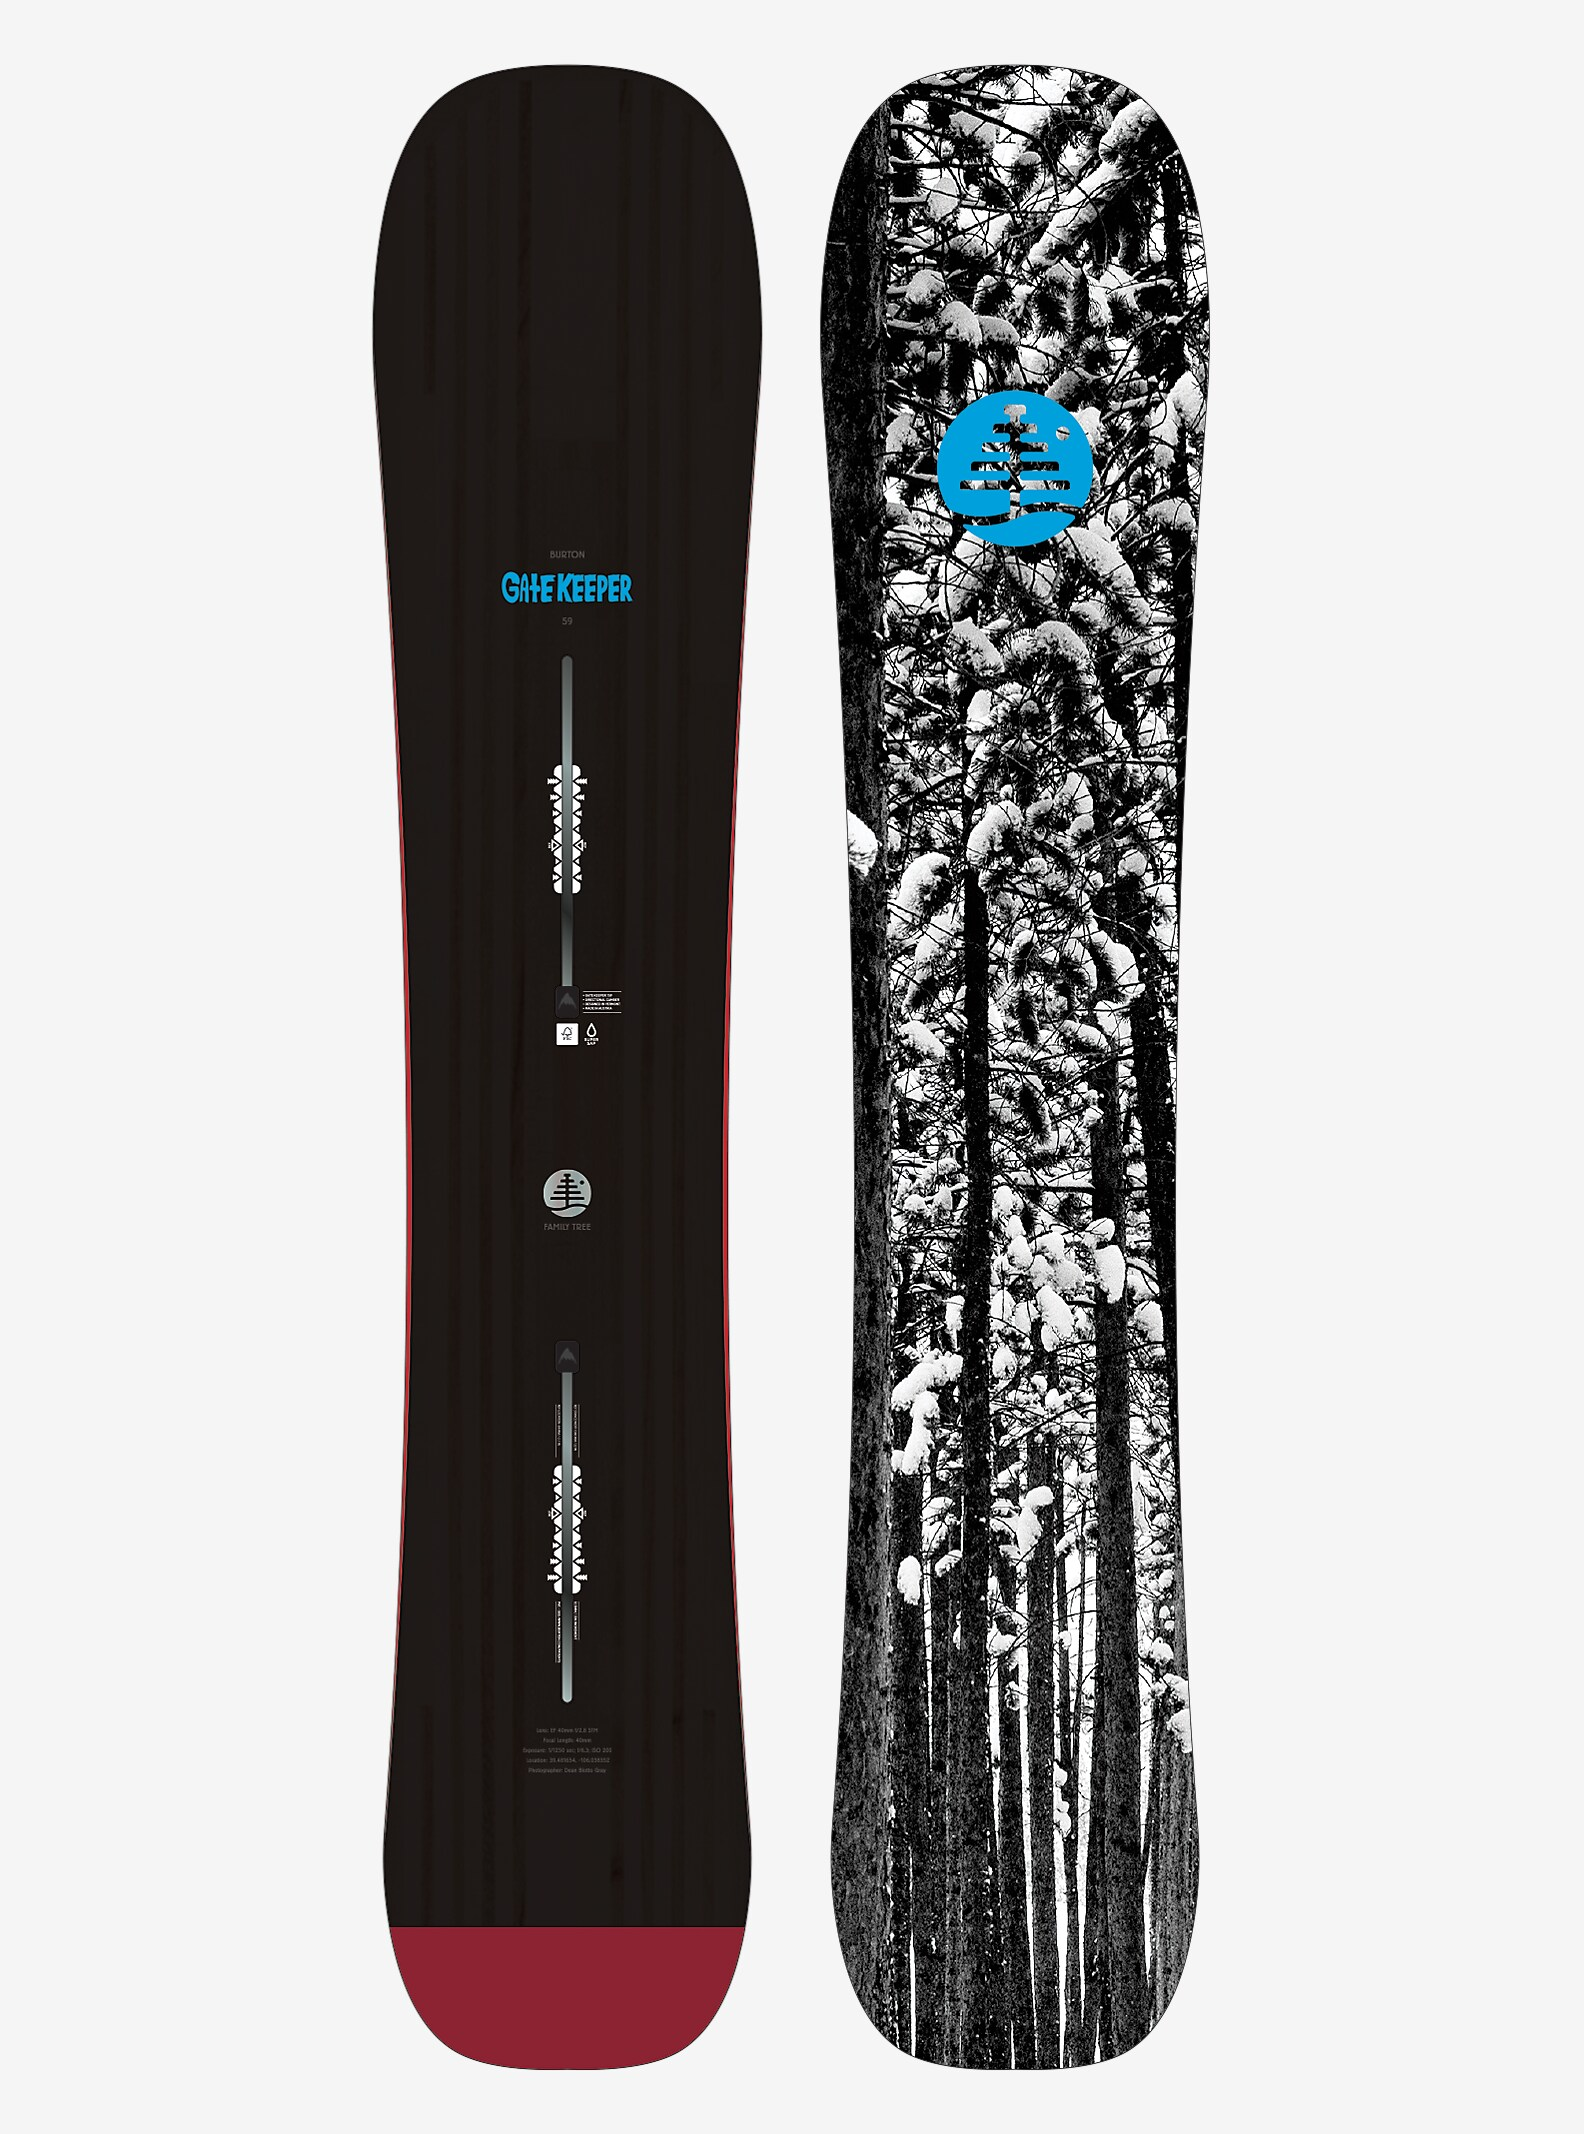 Burton Family Tree Gate Keeper Snowboard shown in 159